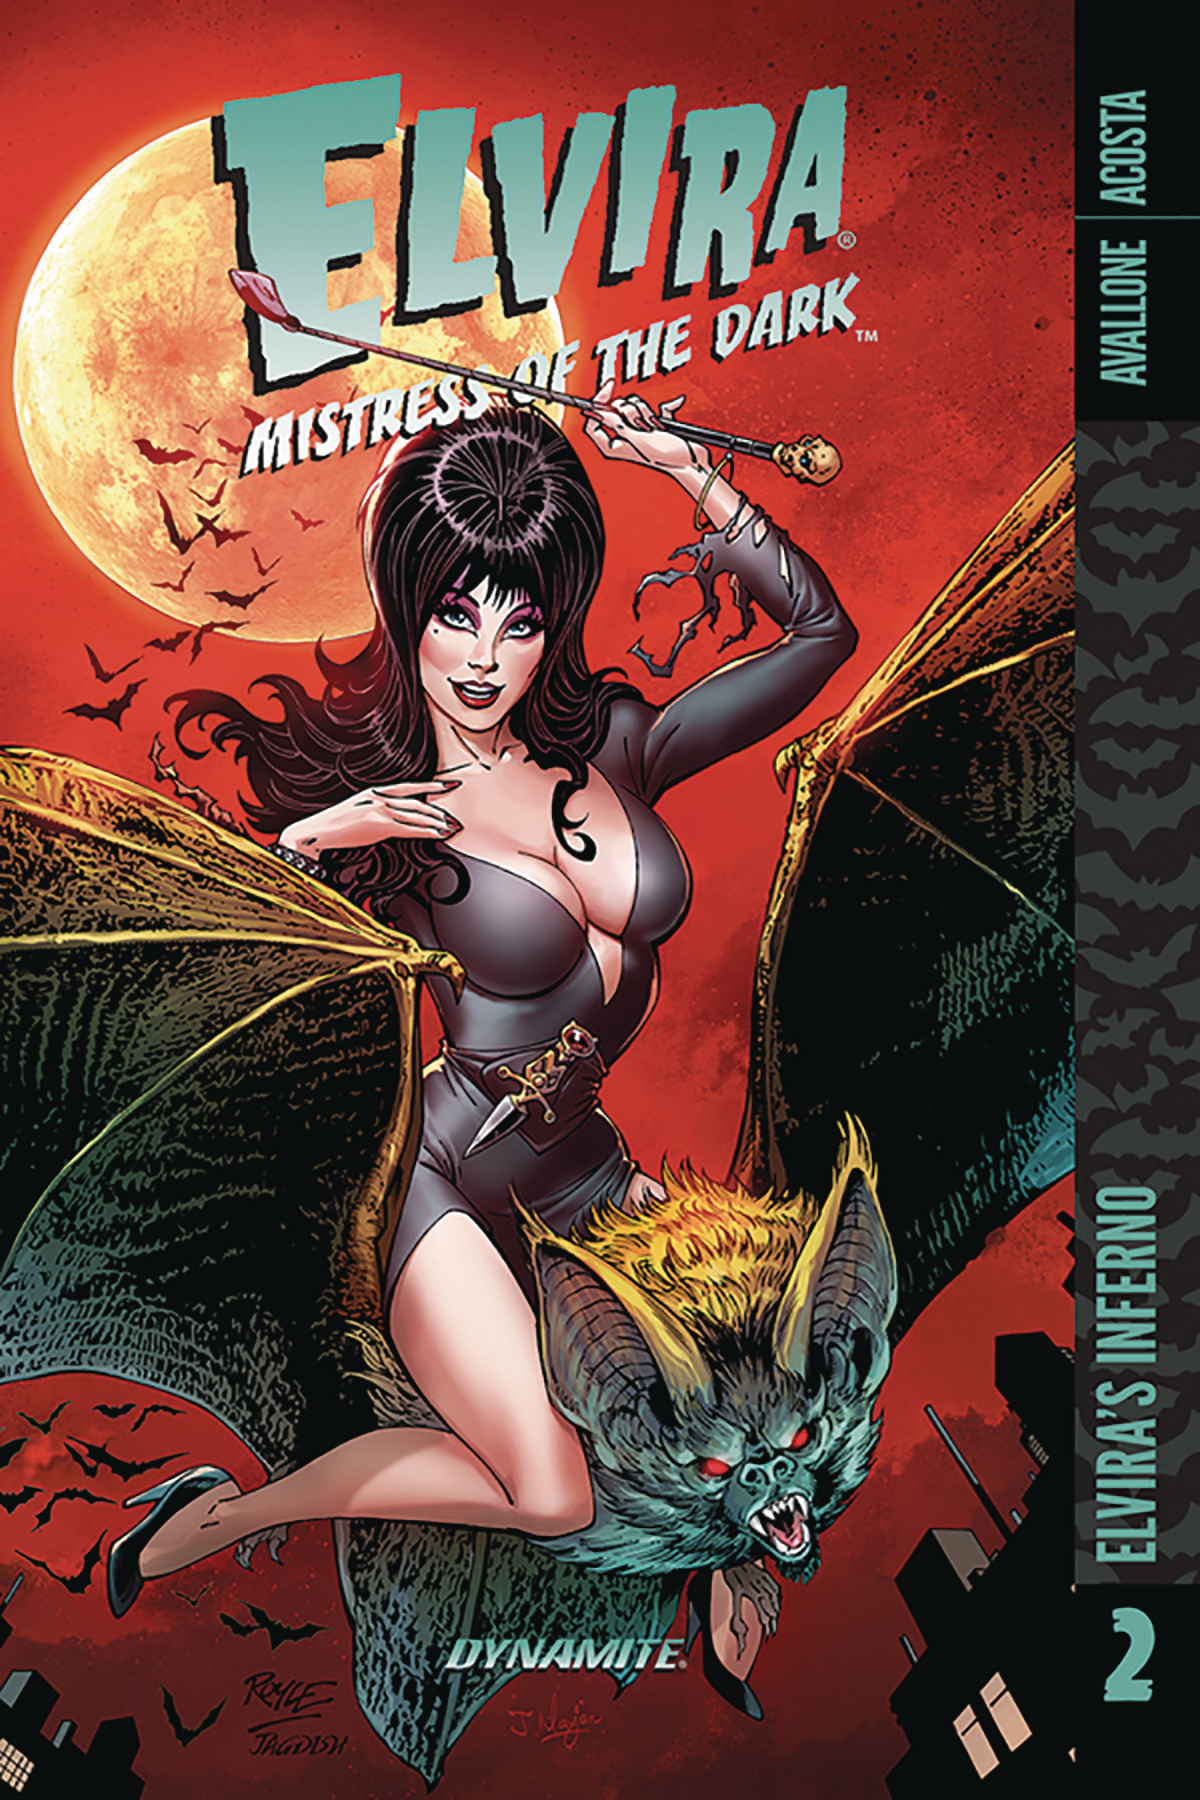 ELVIRA MISTRESS OF DARK TP VOL 02